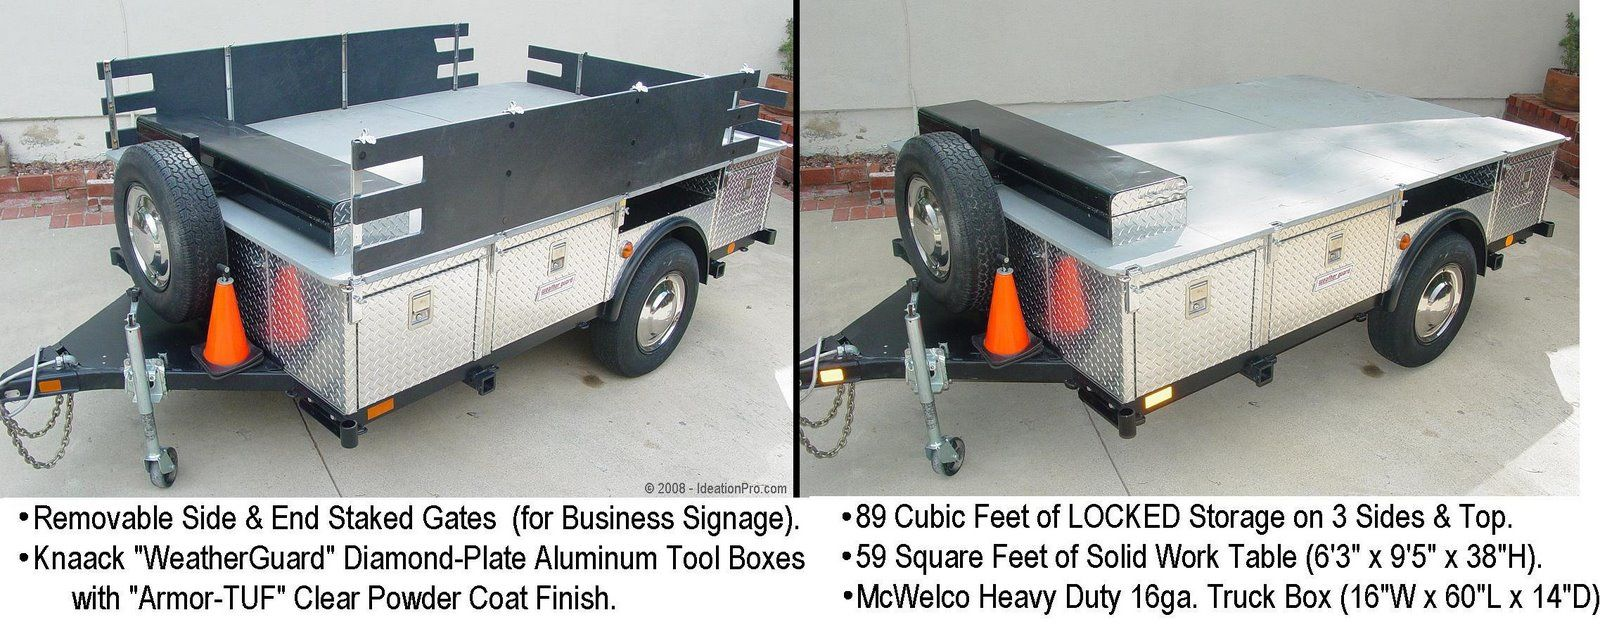 """12½ x 6½ ft TOOL TRAILER KNAACK """"WEATHER GUARD"""" BOXES"""